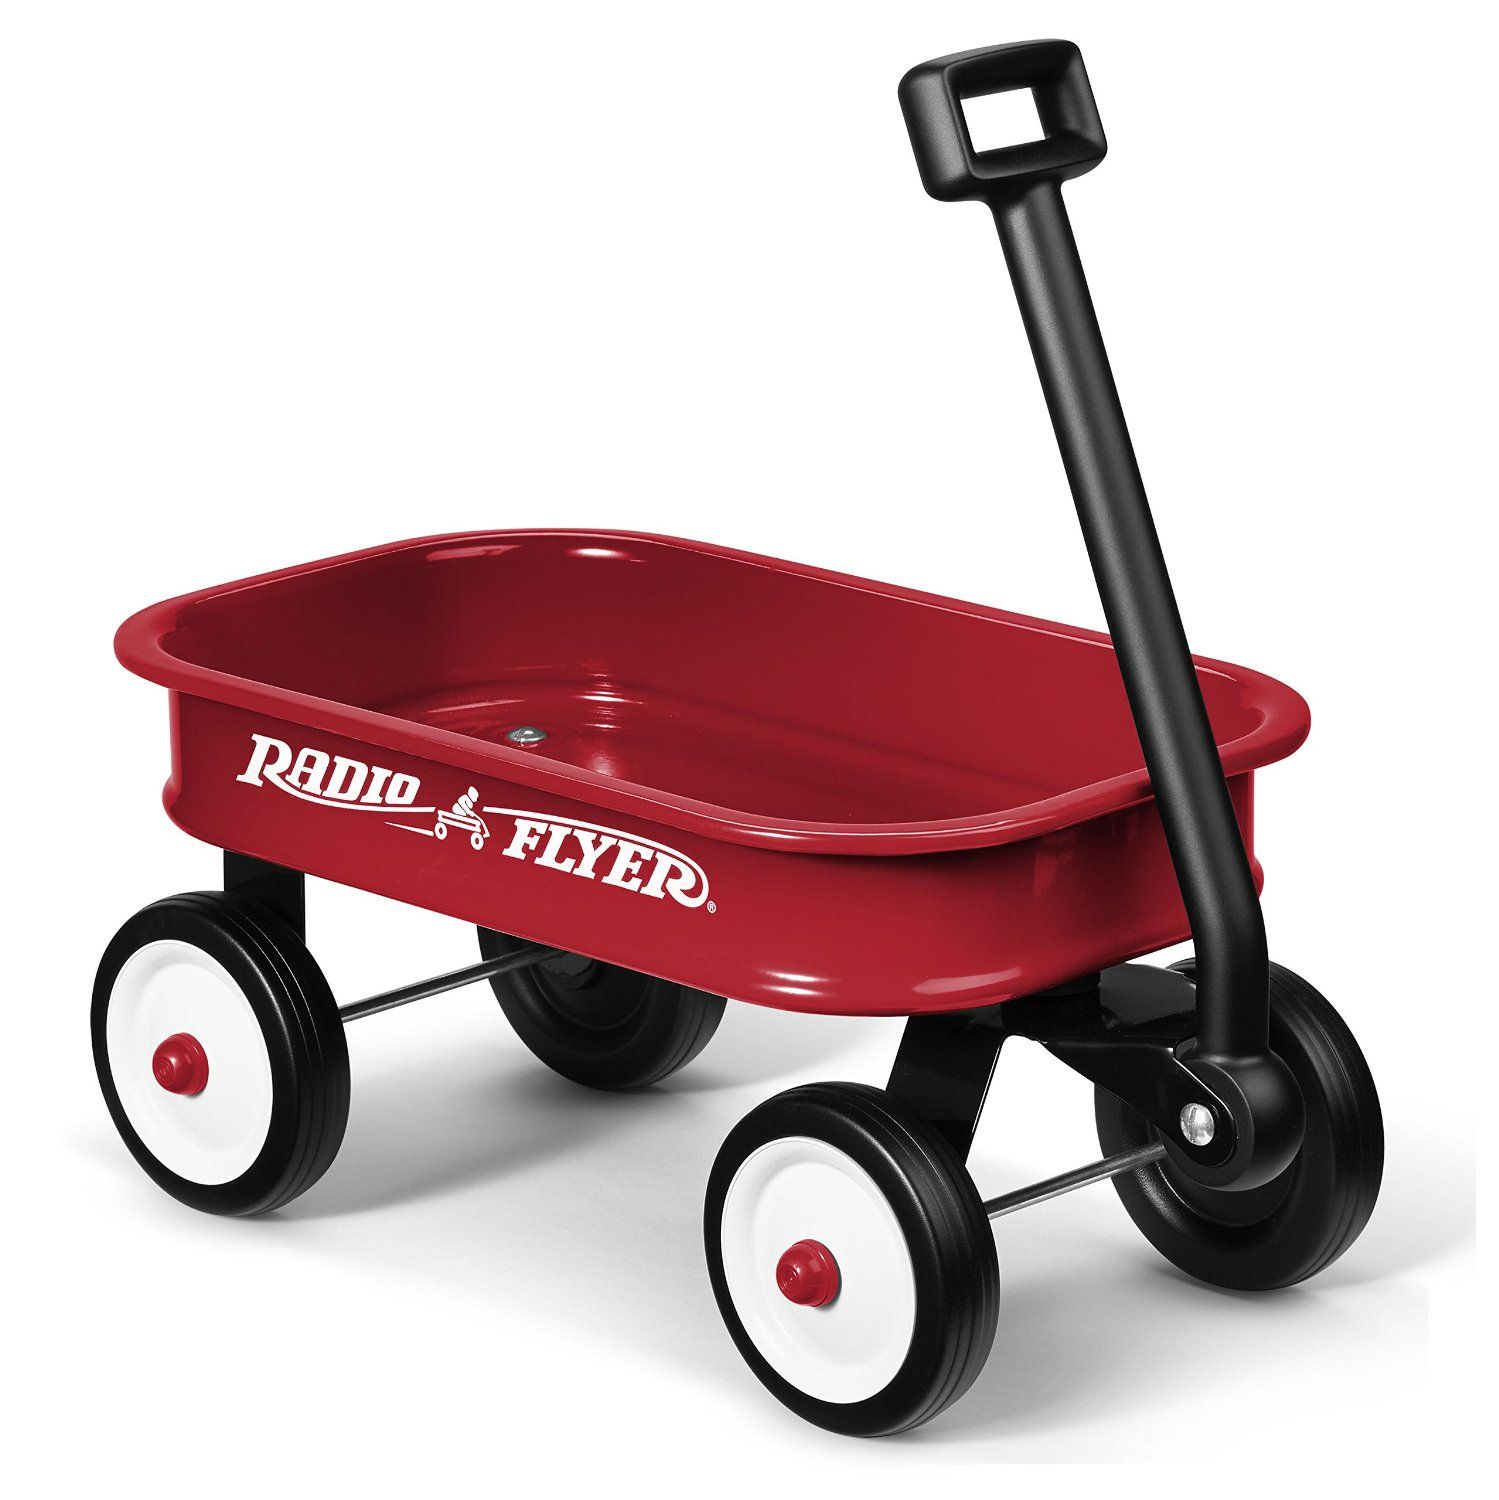 Amazoncom Radio Flyer Little Red Toy Wagon Toys & Games